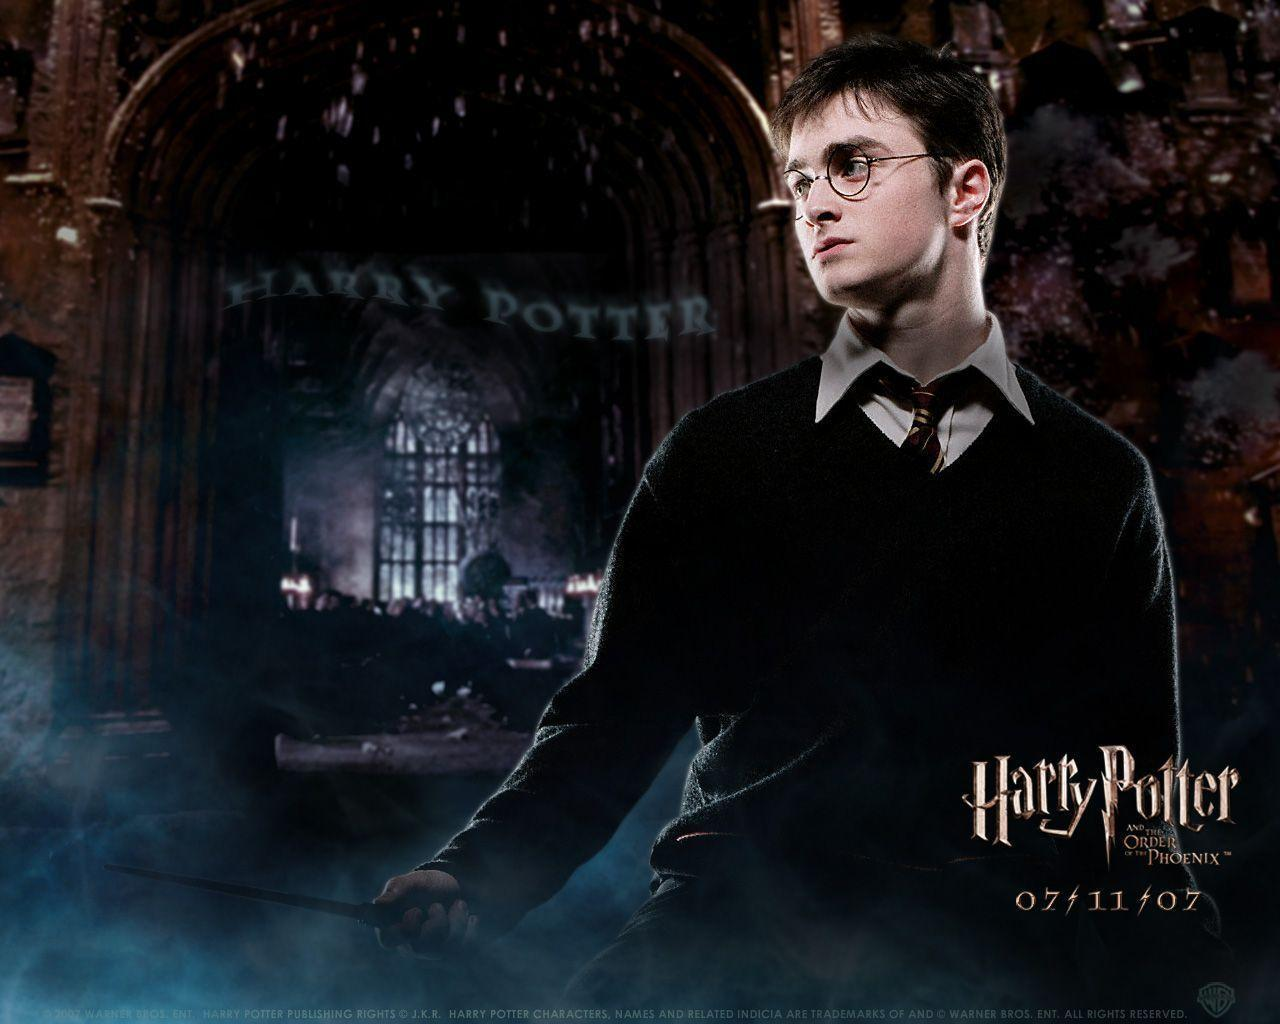 herru potter full movie torrntz